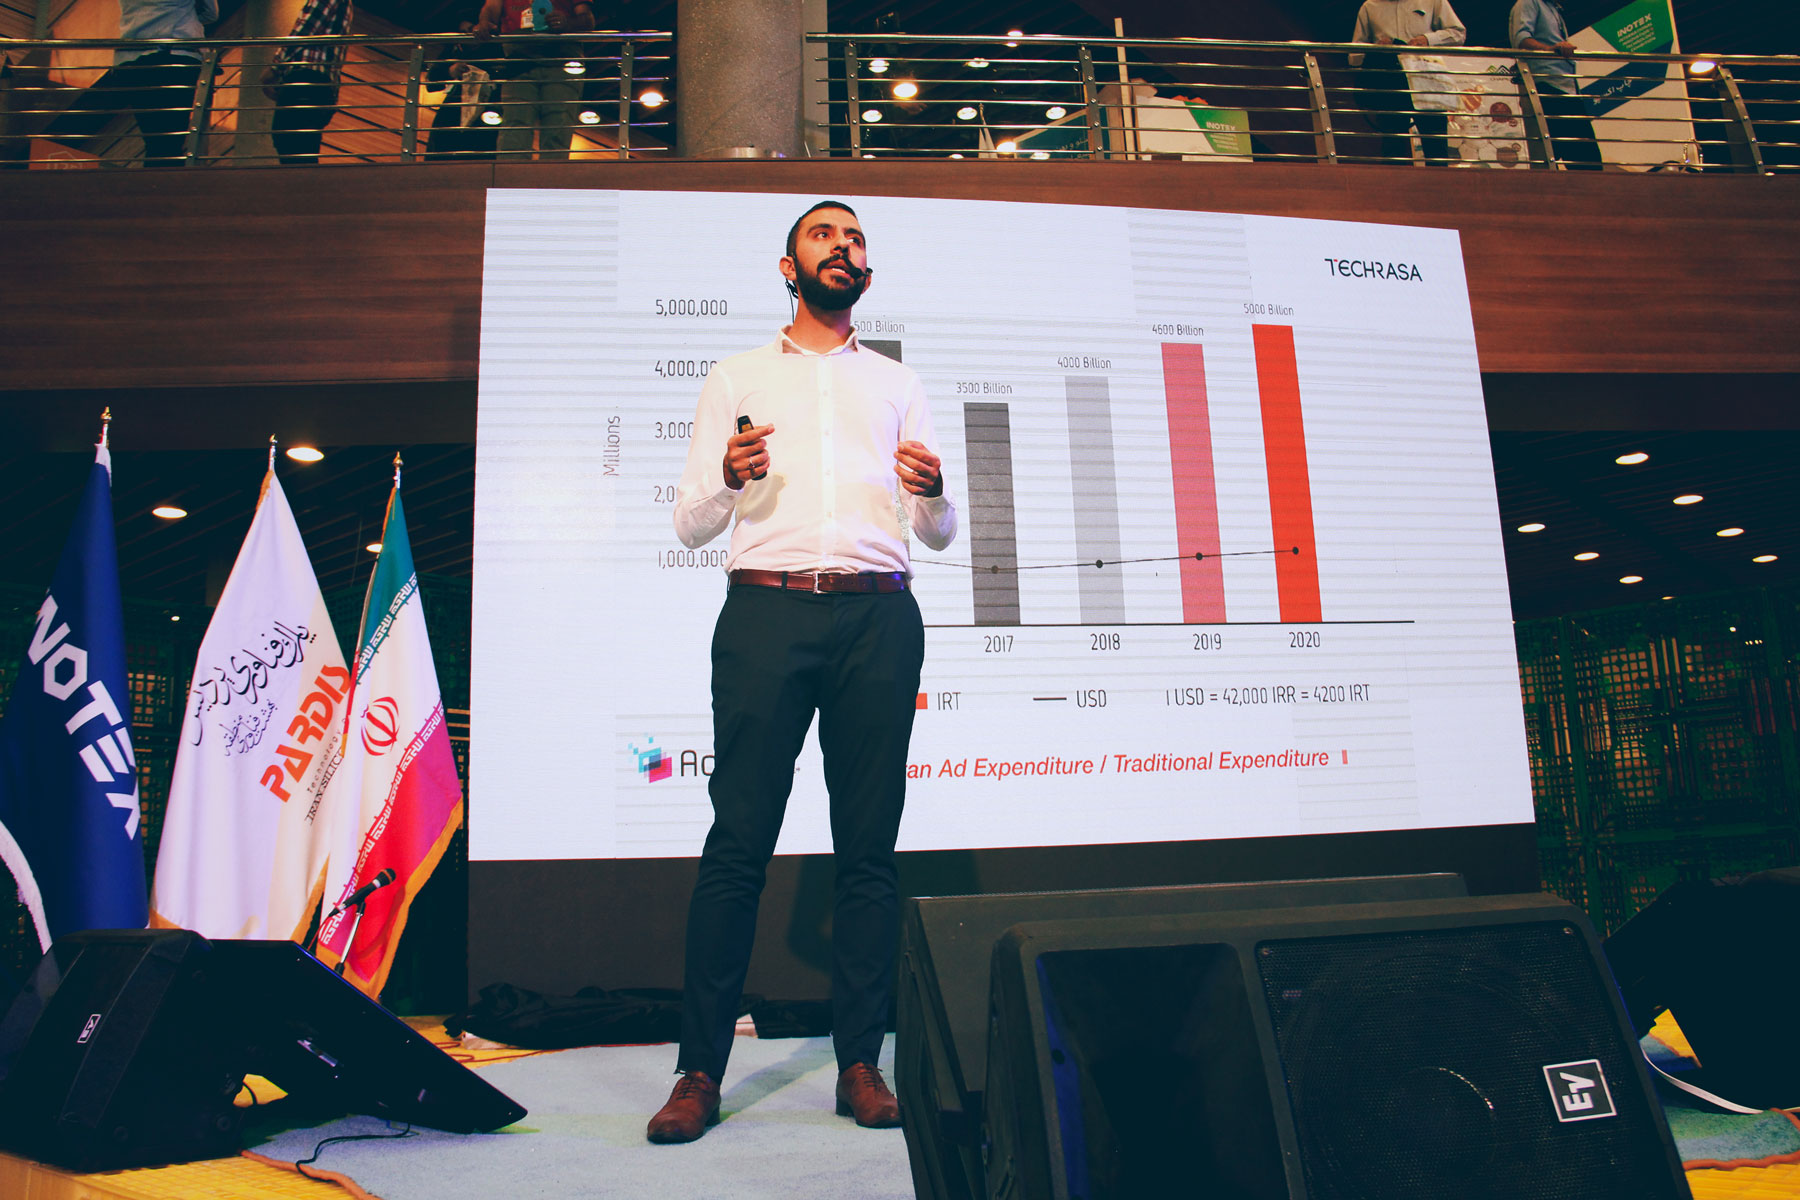 INOTEX Exhibition in Tehran, Iran. Talk on the the state of digital advertising and the Internet and mobile infrastructure.